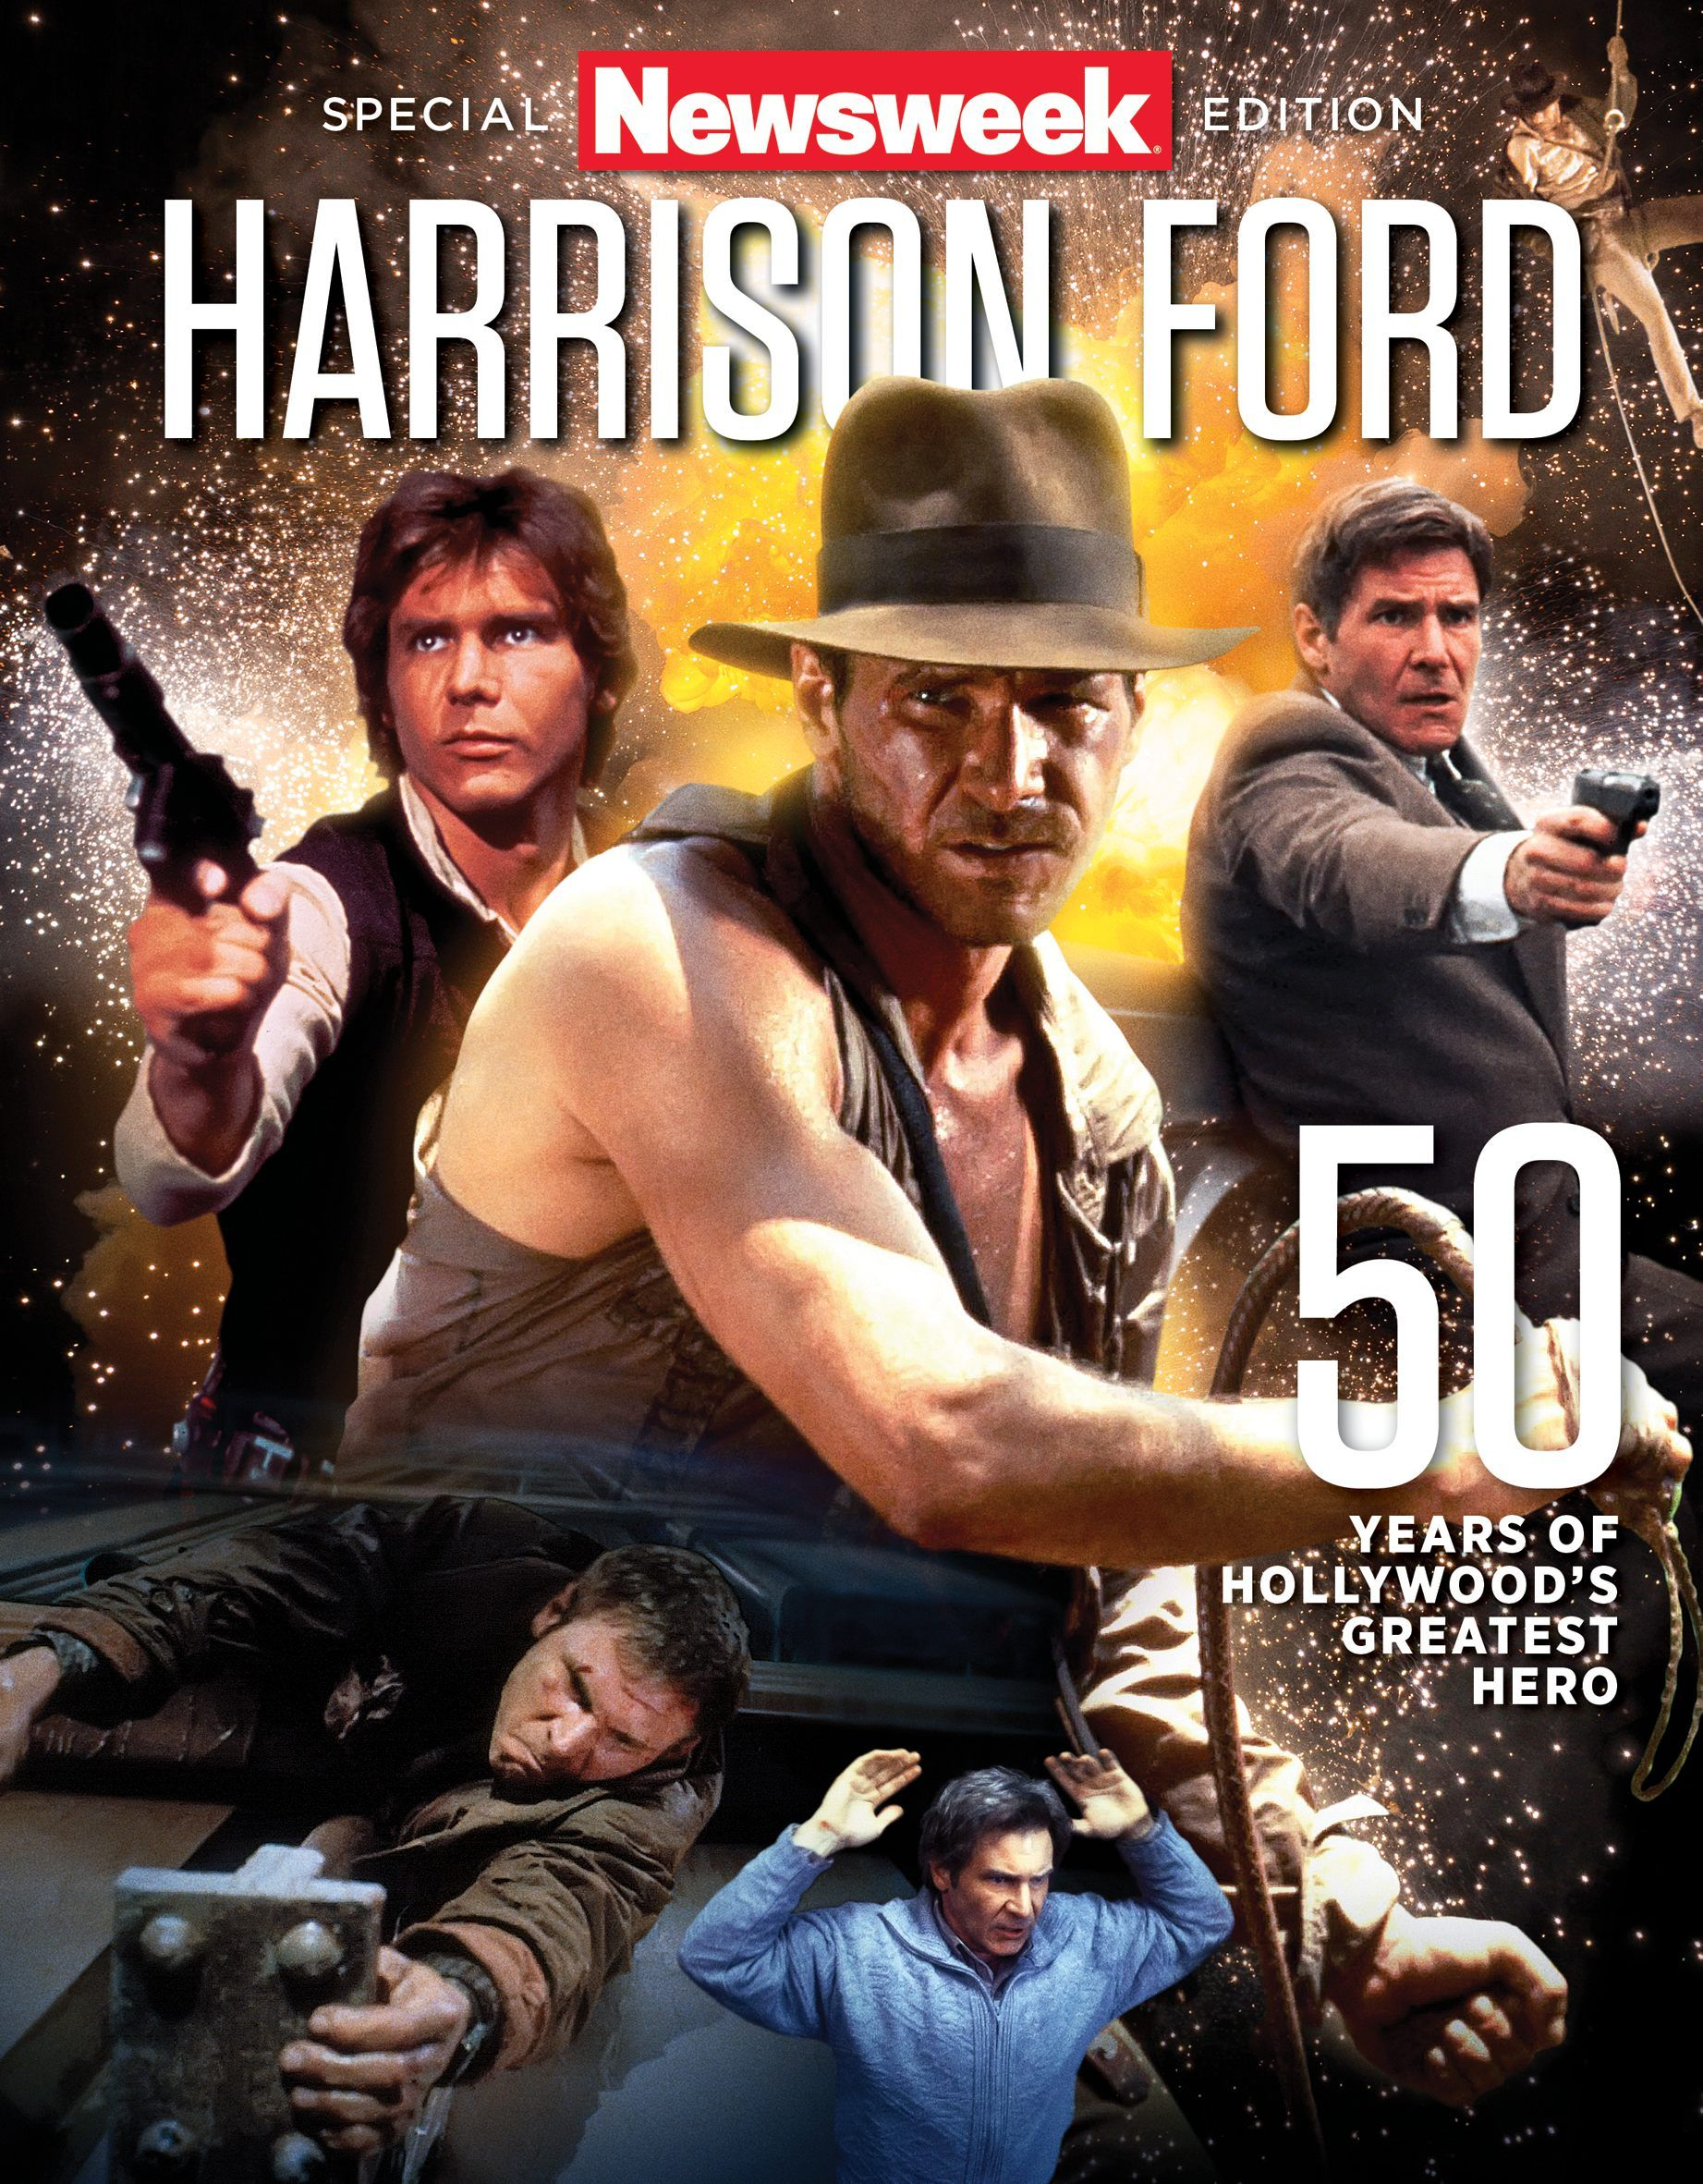 Beyond Star Wars: The Movies That Made Harrison Ford